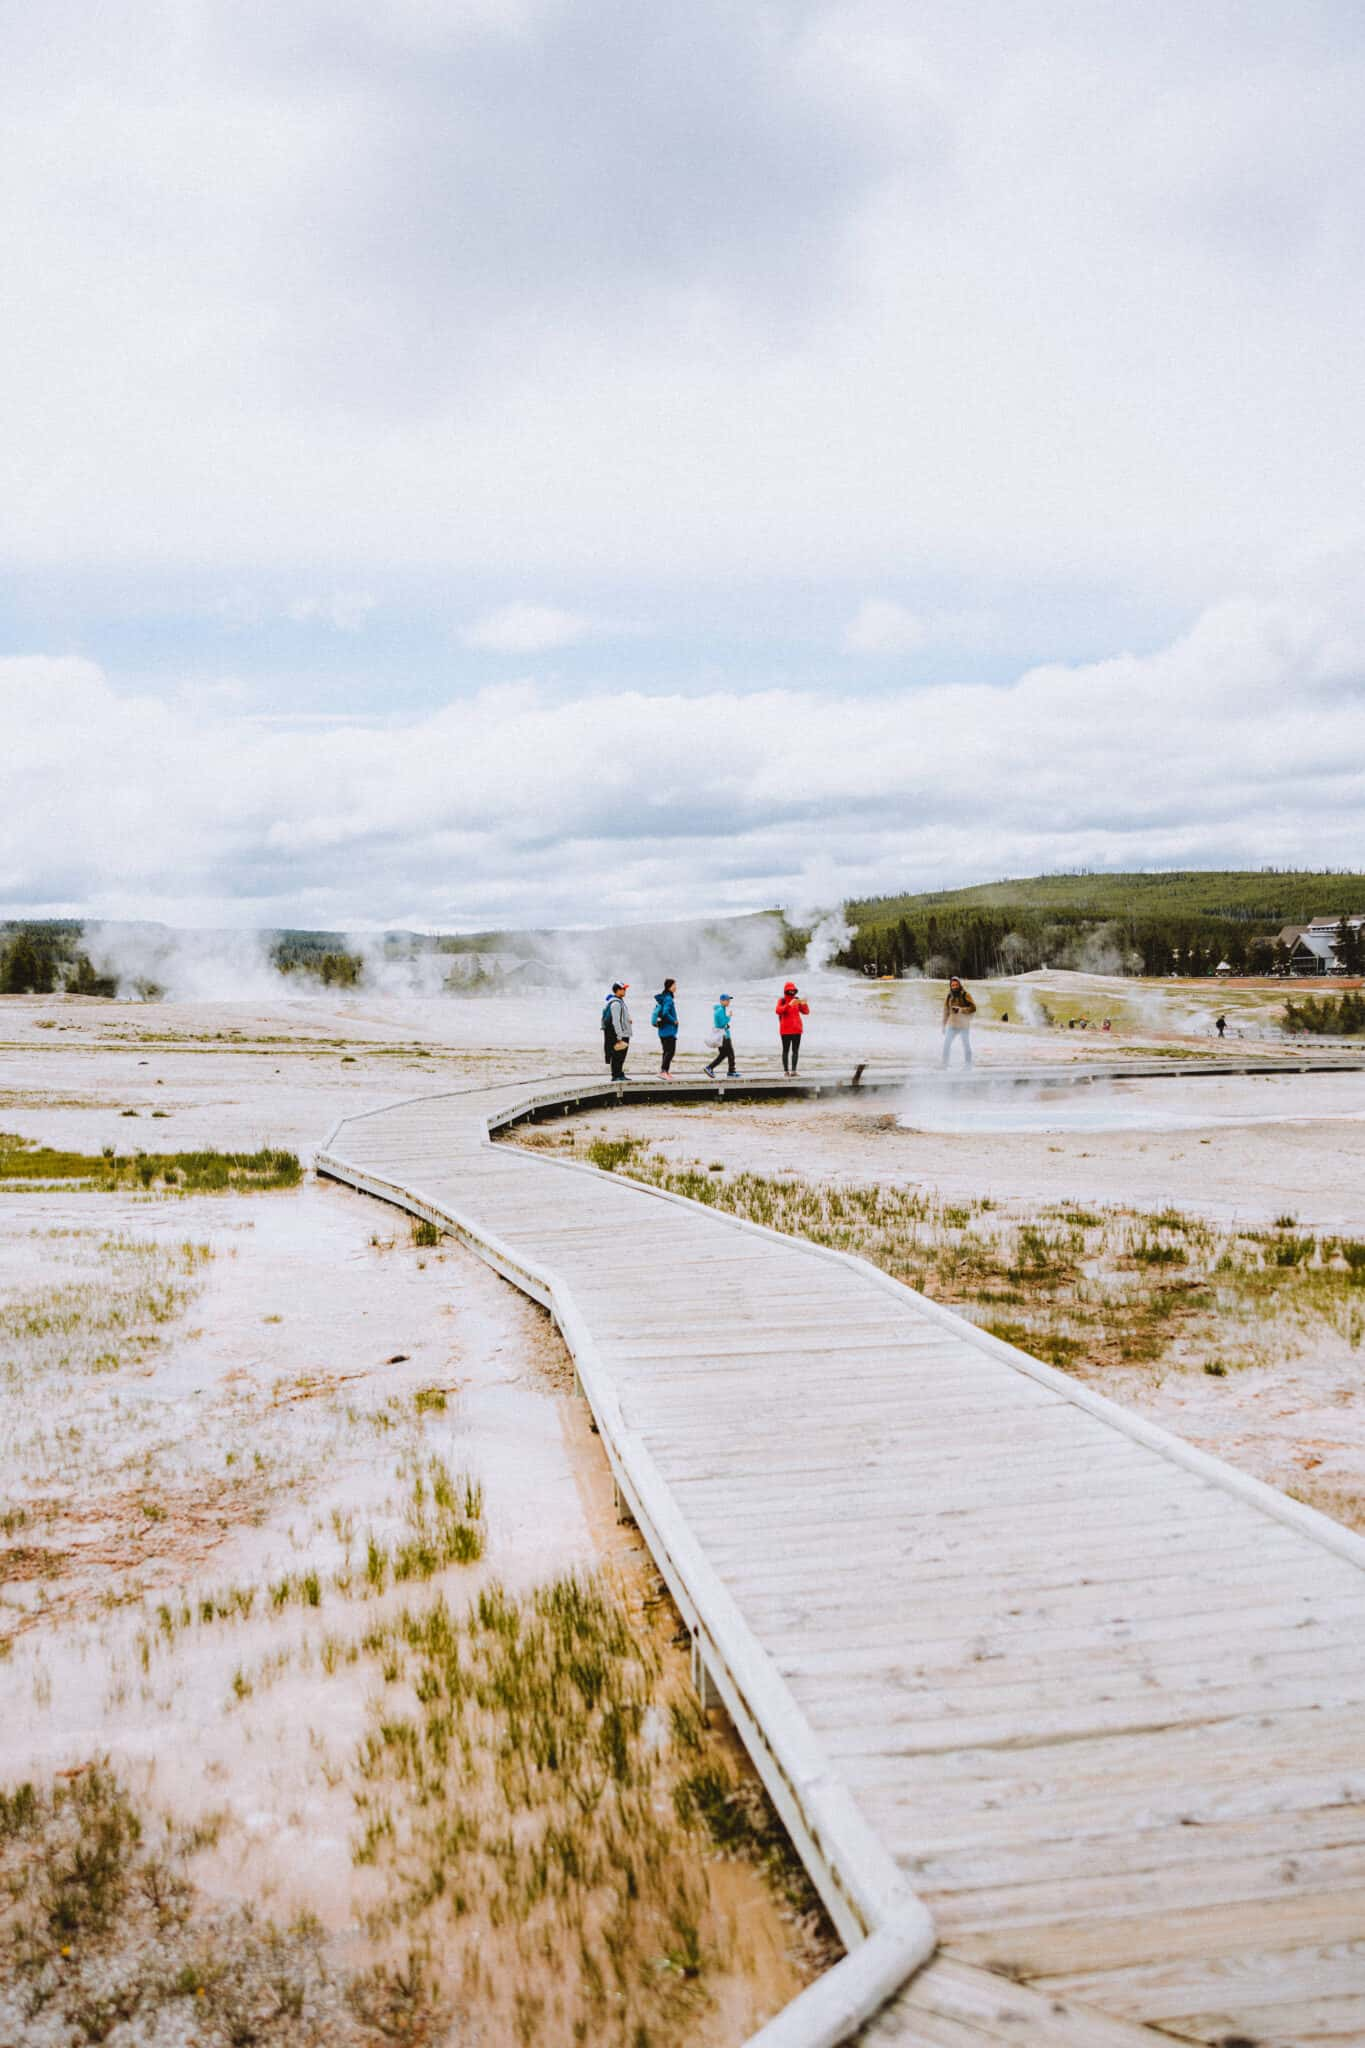 People walking on Boardwalk in Yellowstone National Park